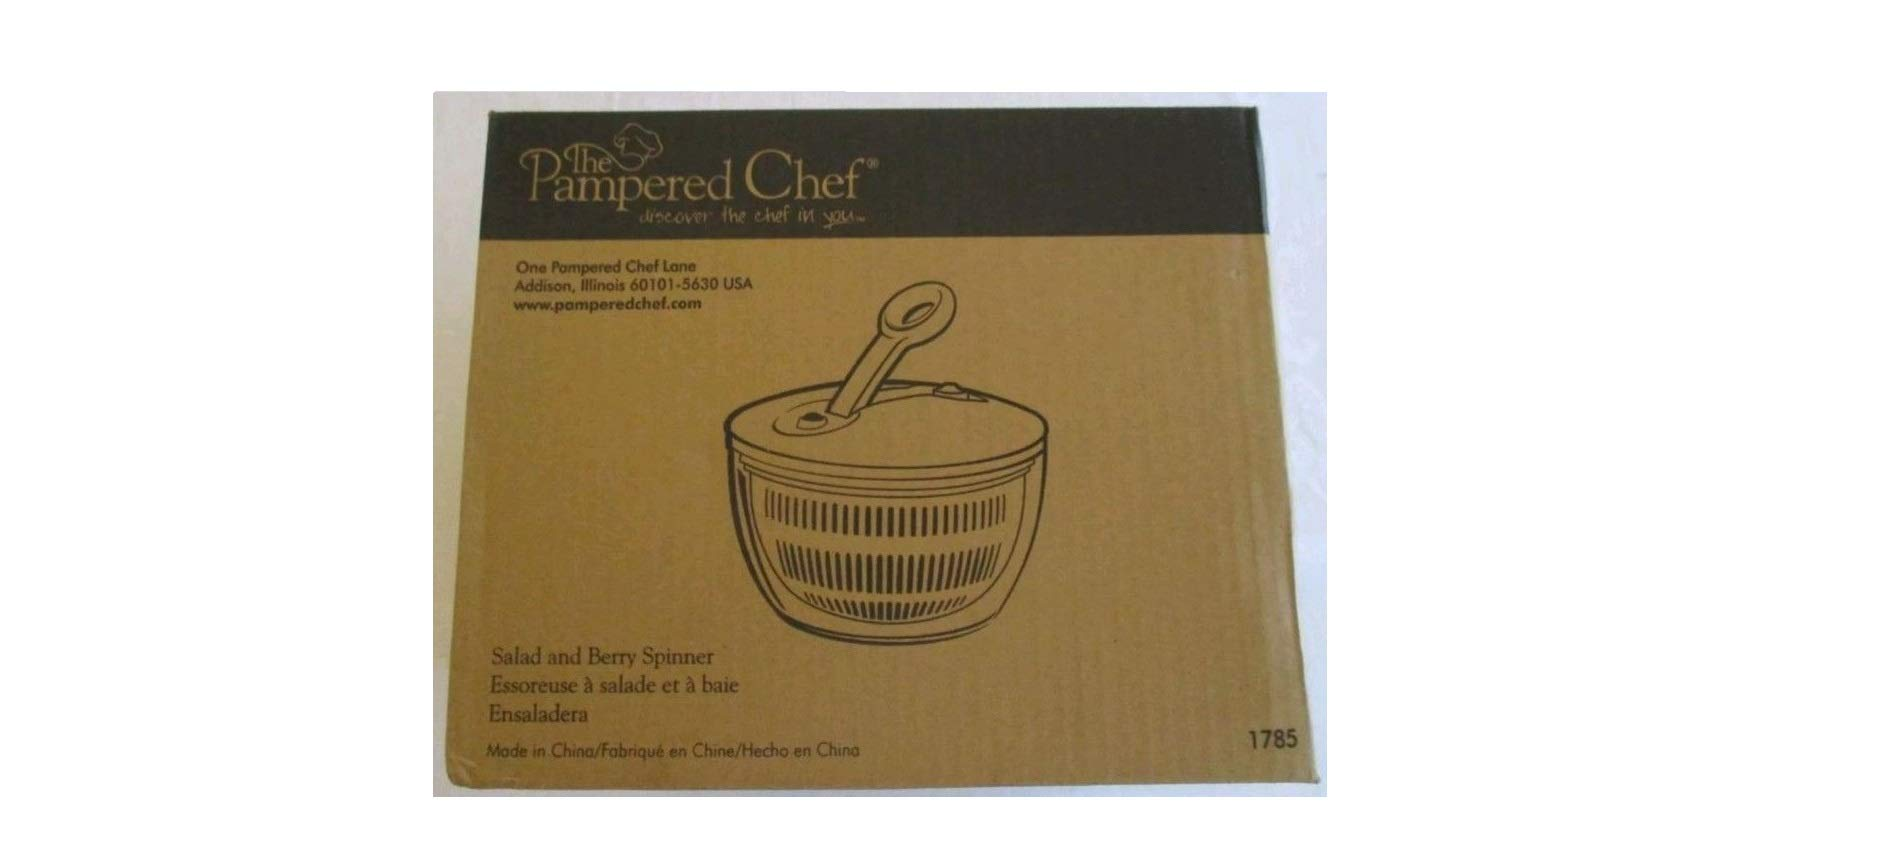 Pampered Chef Salad and Berry Spinner by Pampered Chef